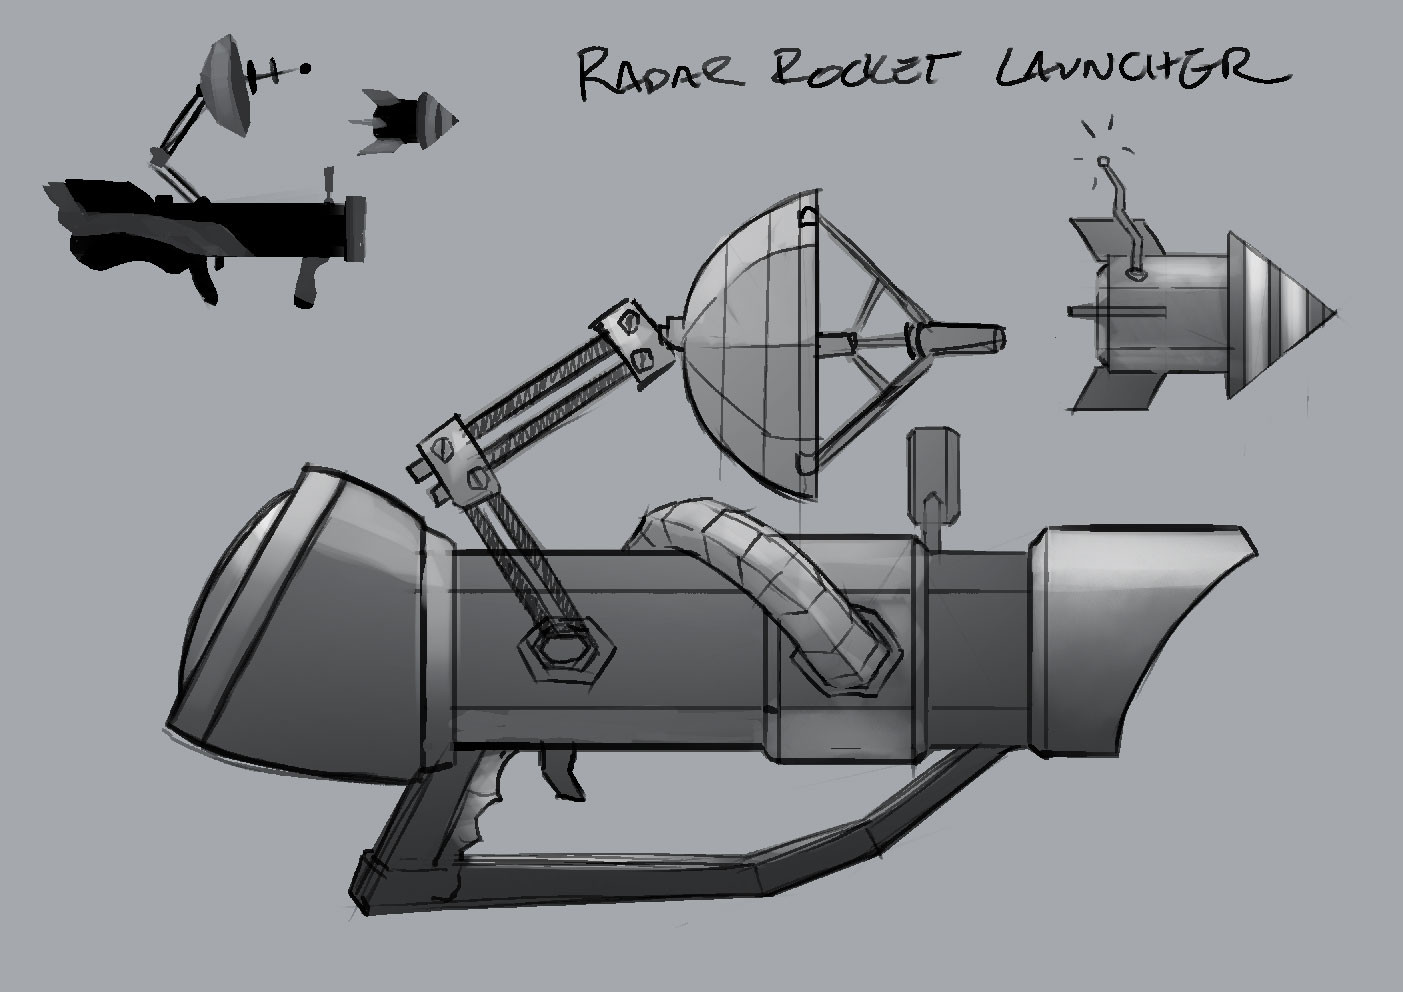 Chx welch weaponconcepts romancandle radarrocket